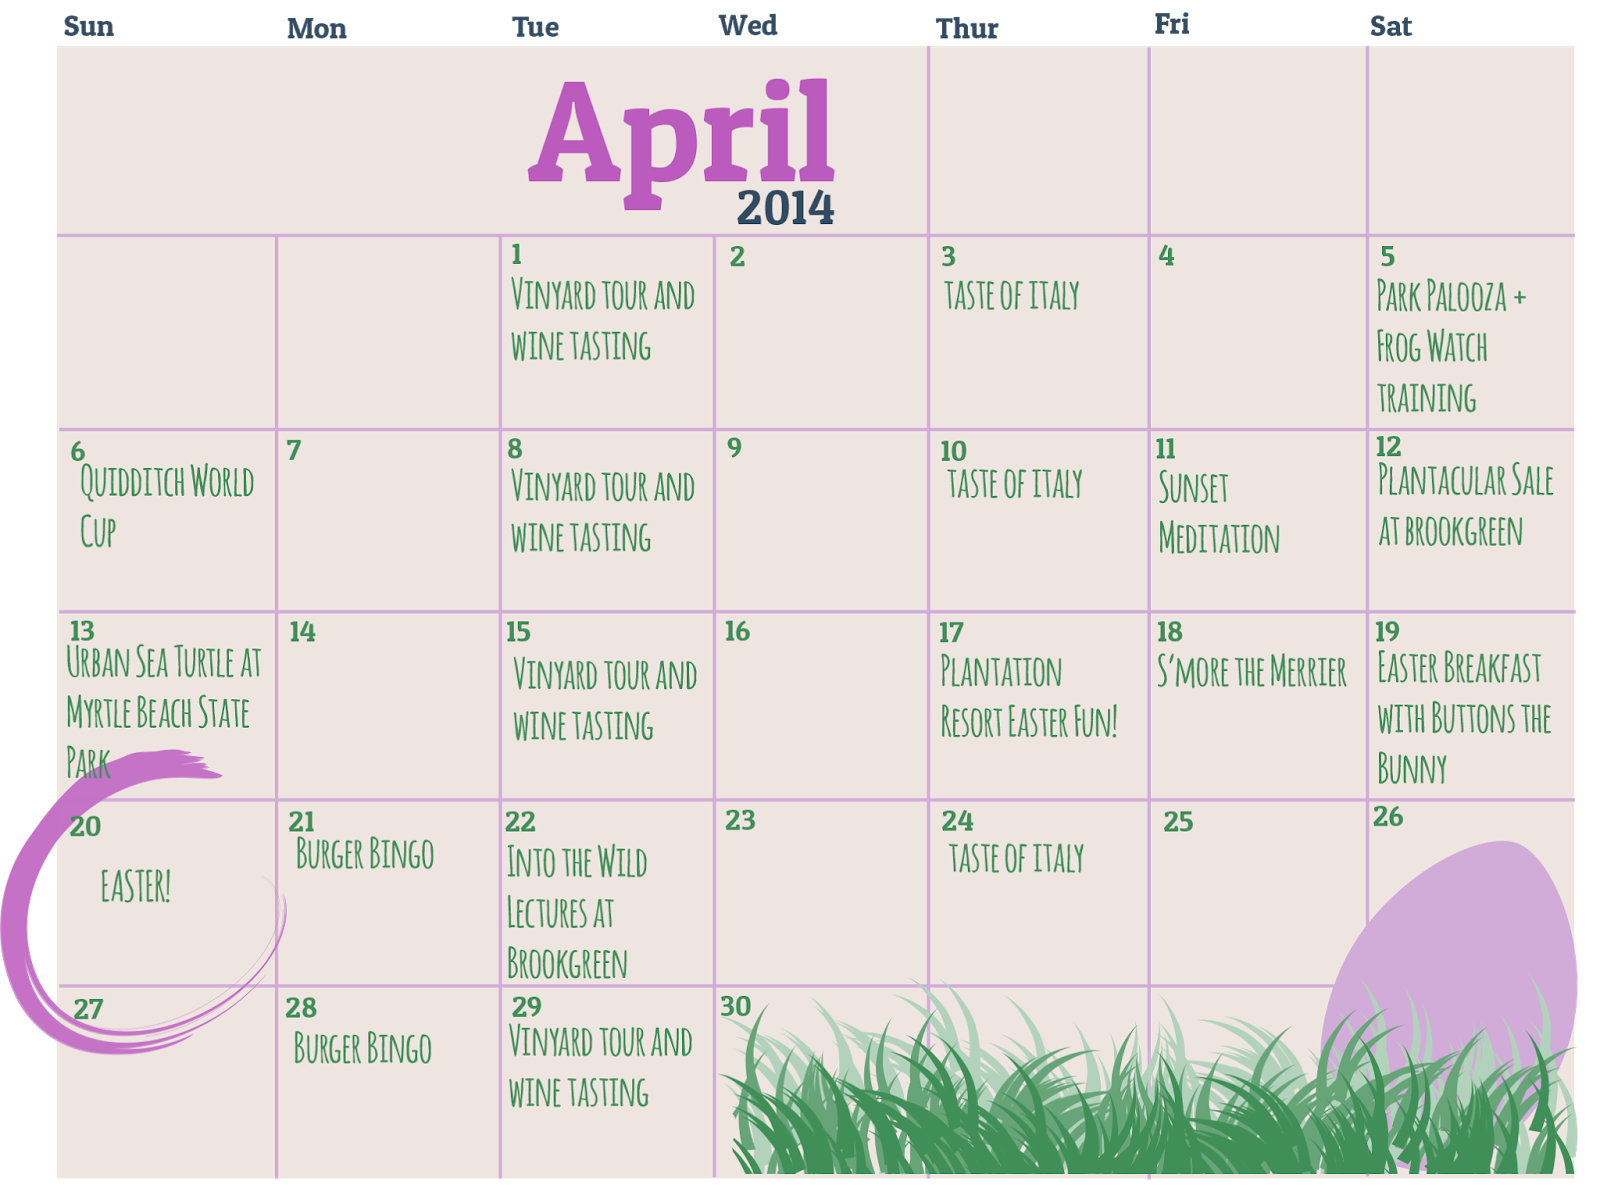 Calendar April Png : Plantation resort insider where you can play in myrtle